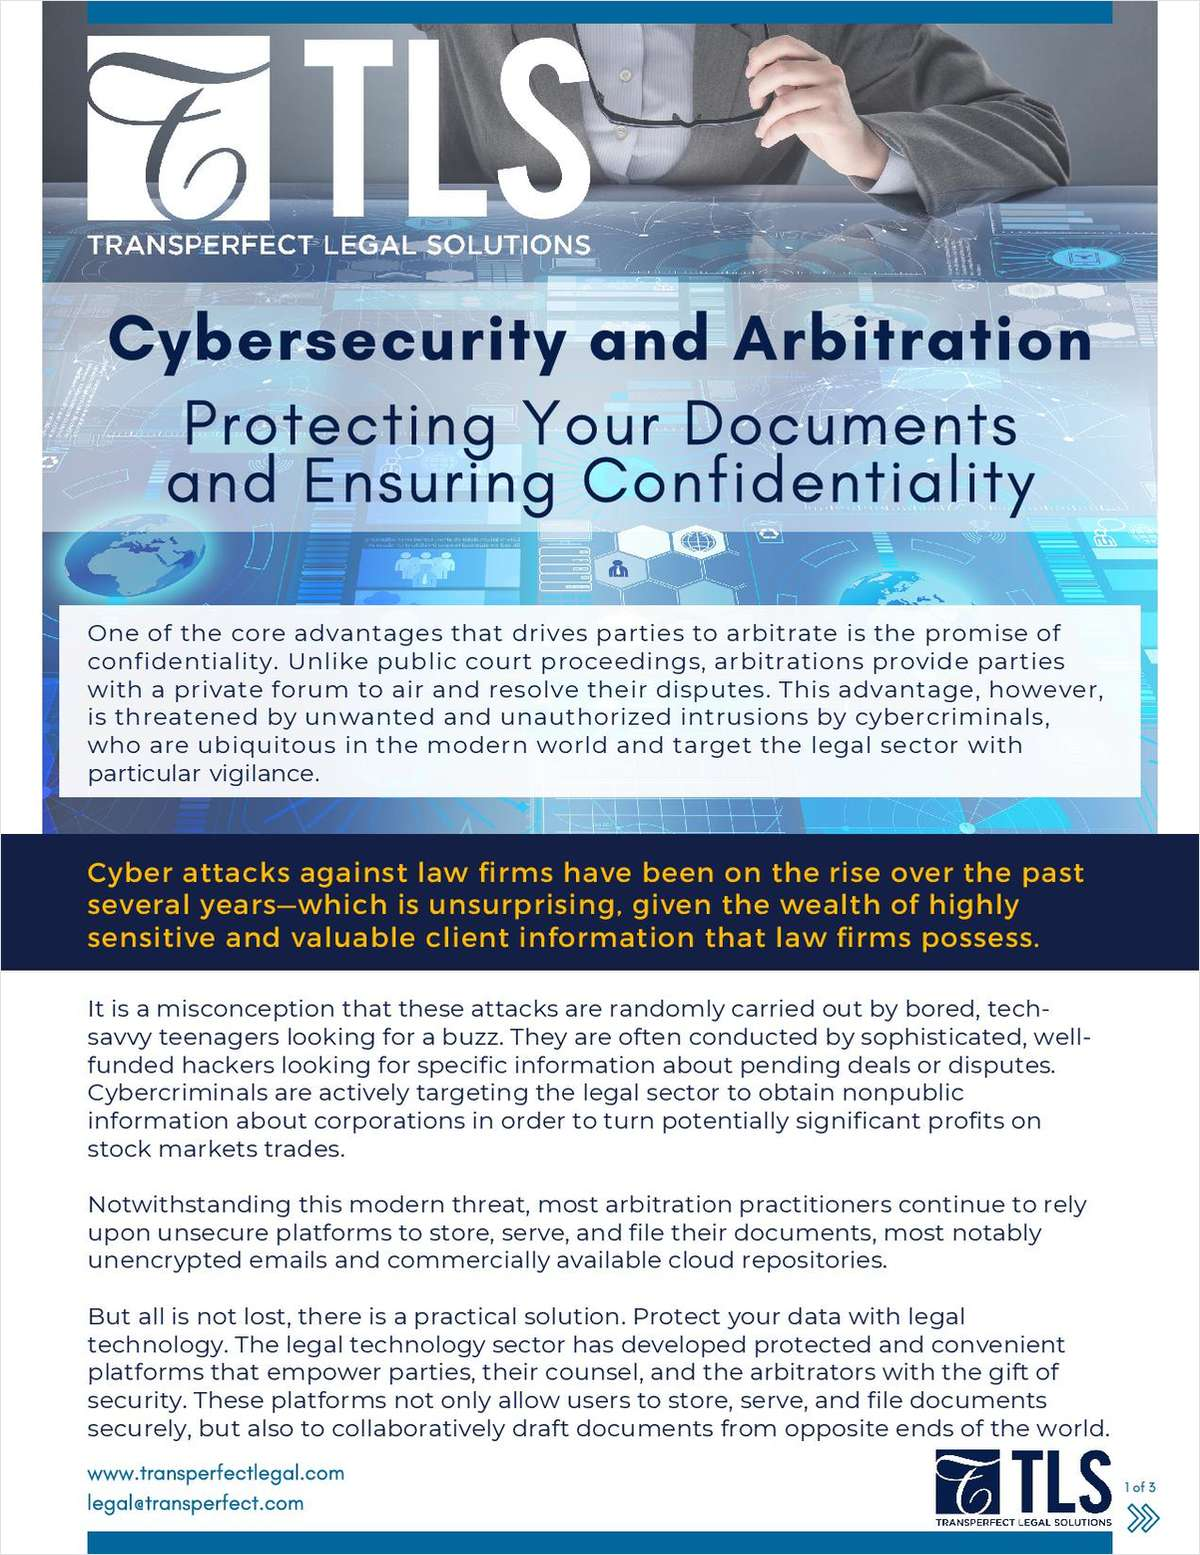 In today's digital age, attorneys and their clients can never be too careful when handling sensitive information electronically. Avoid confidentiality breaches with trusted security and legal technology.